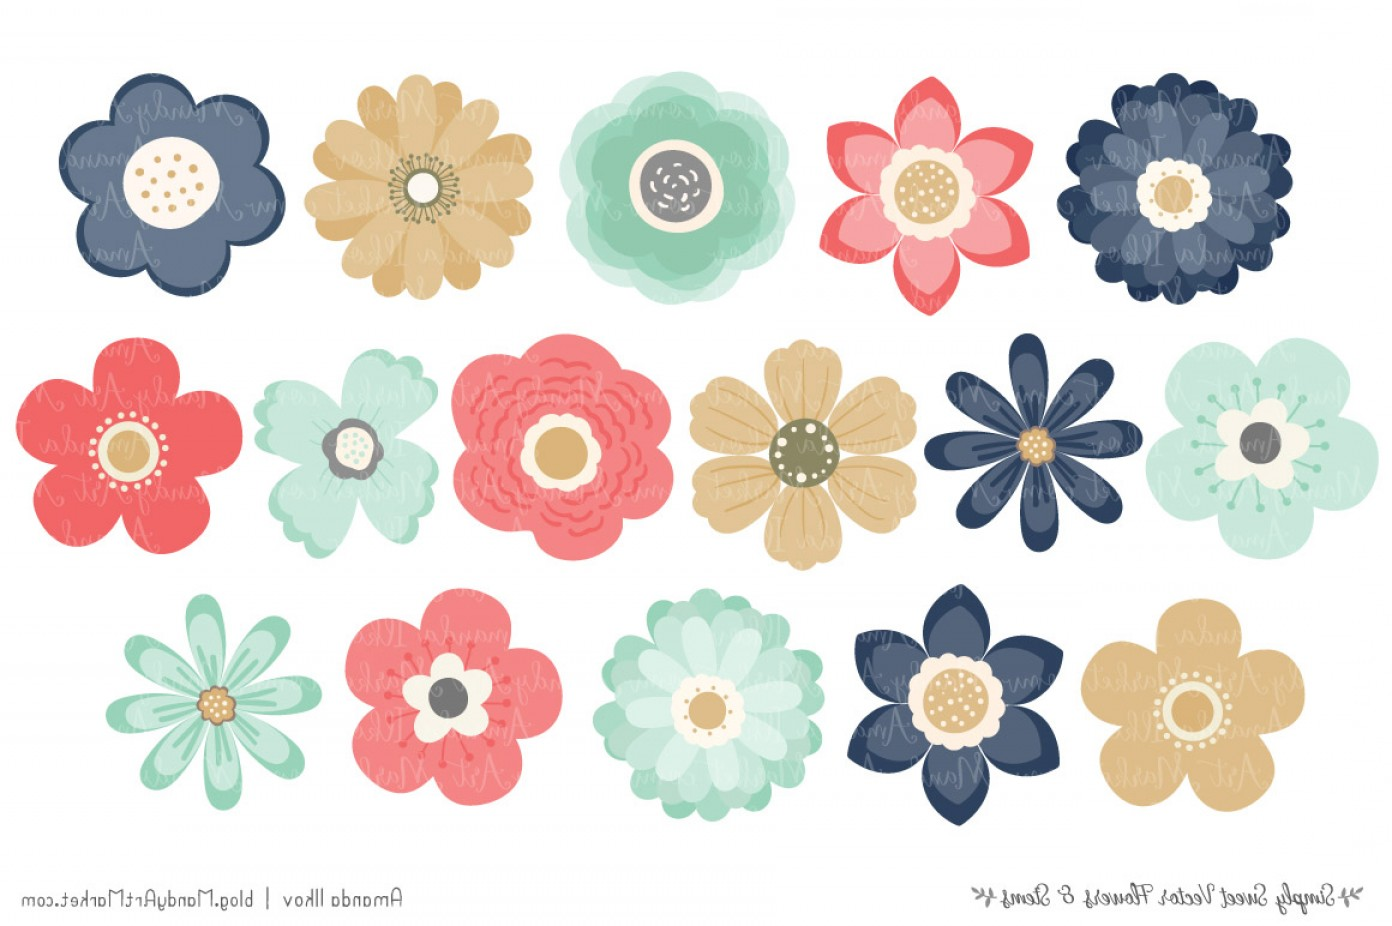 Modern Flower Logo Vector: Simply Sweet Vector Flowers And Stems Clipart In Modern Chic